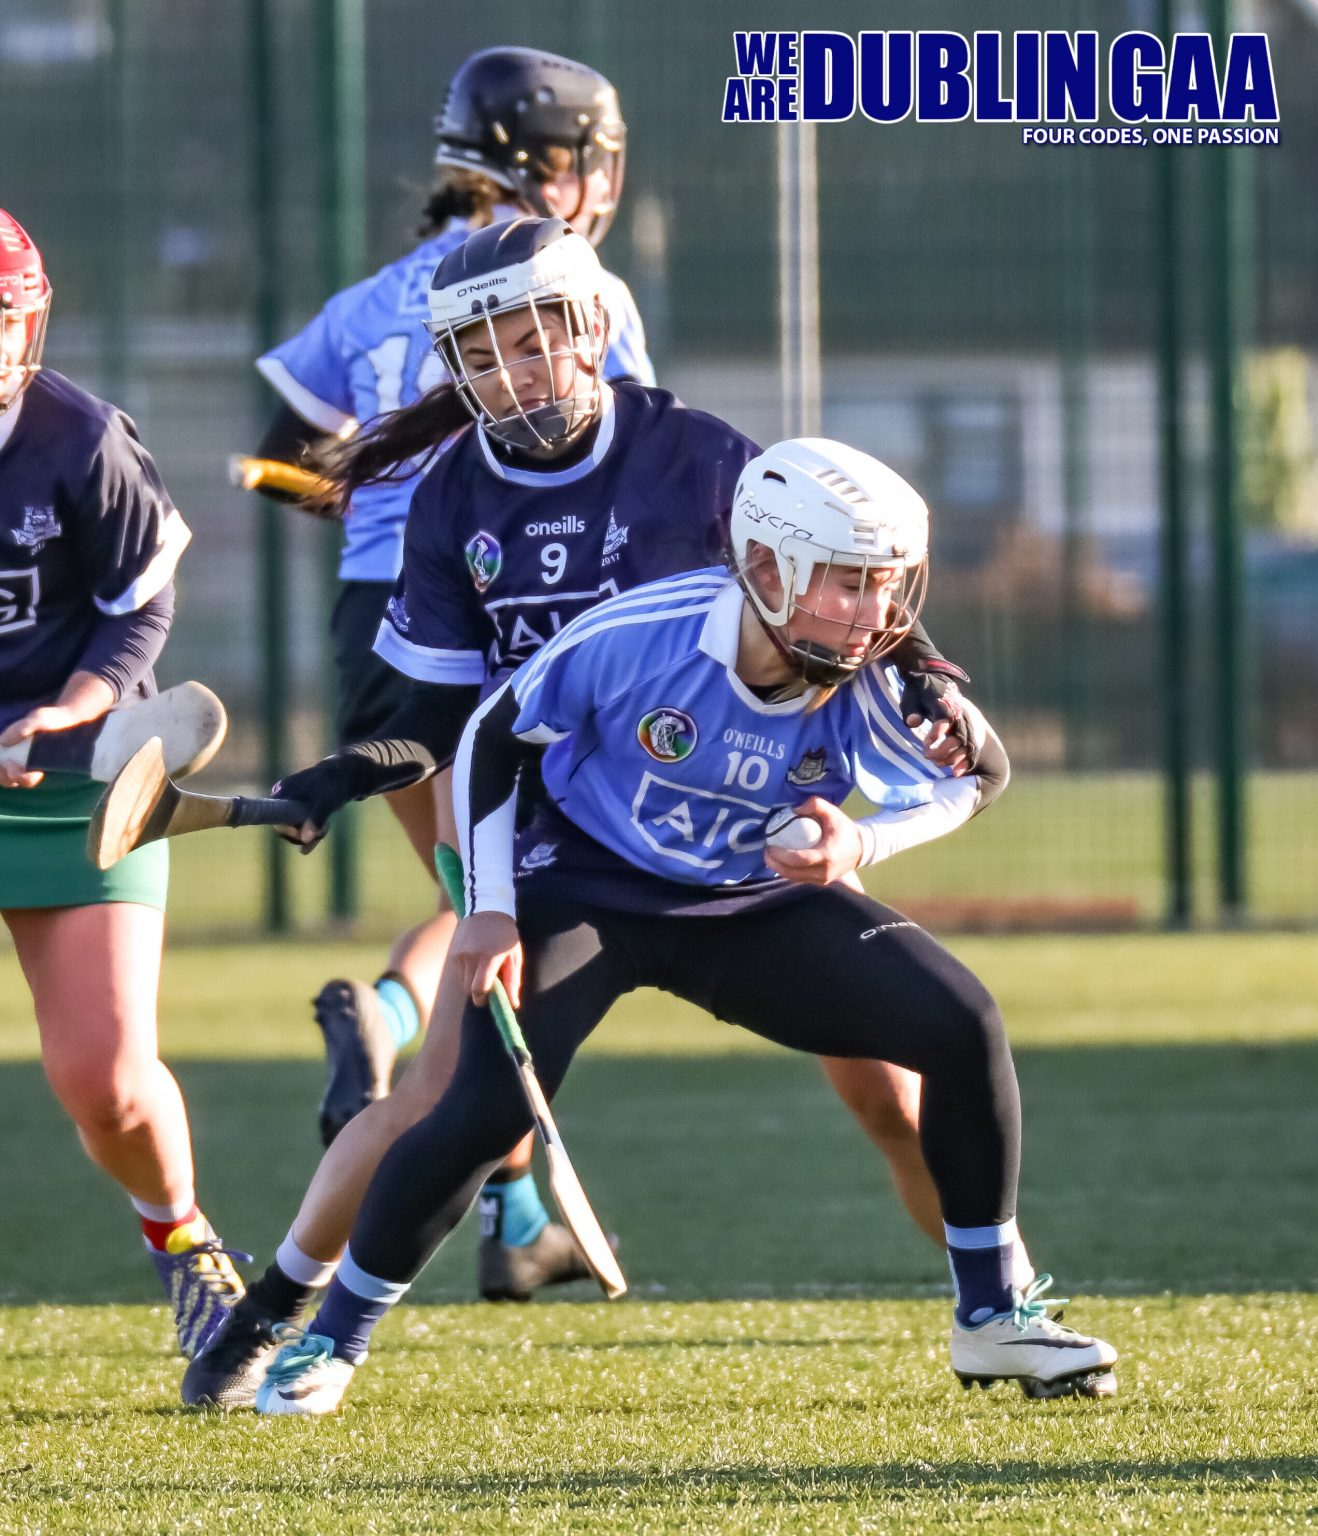 Dublin Premier Junior Captain Sinead Nolan Breaks Free From The Tackle Of Celine Atancio Of The Dubs Stars